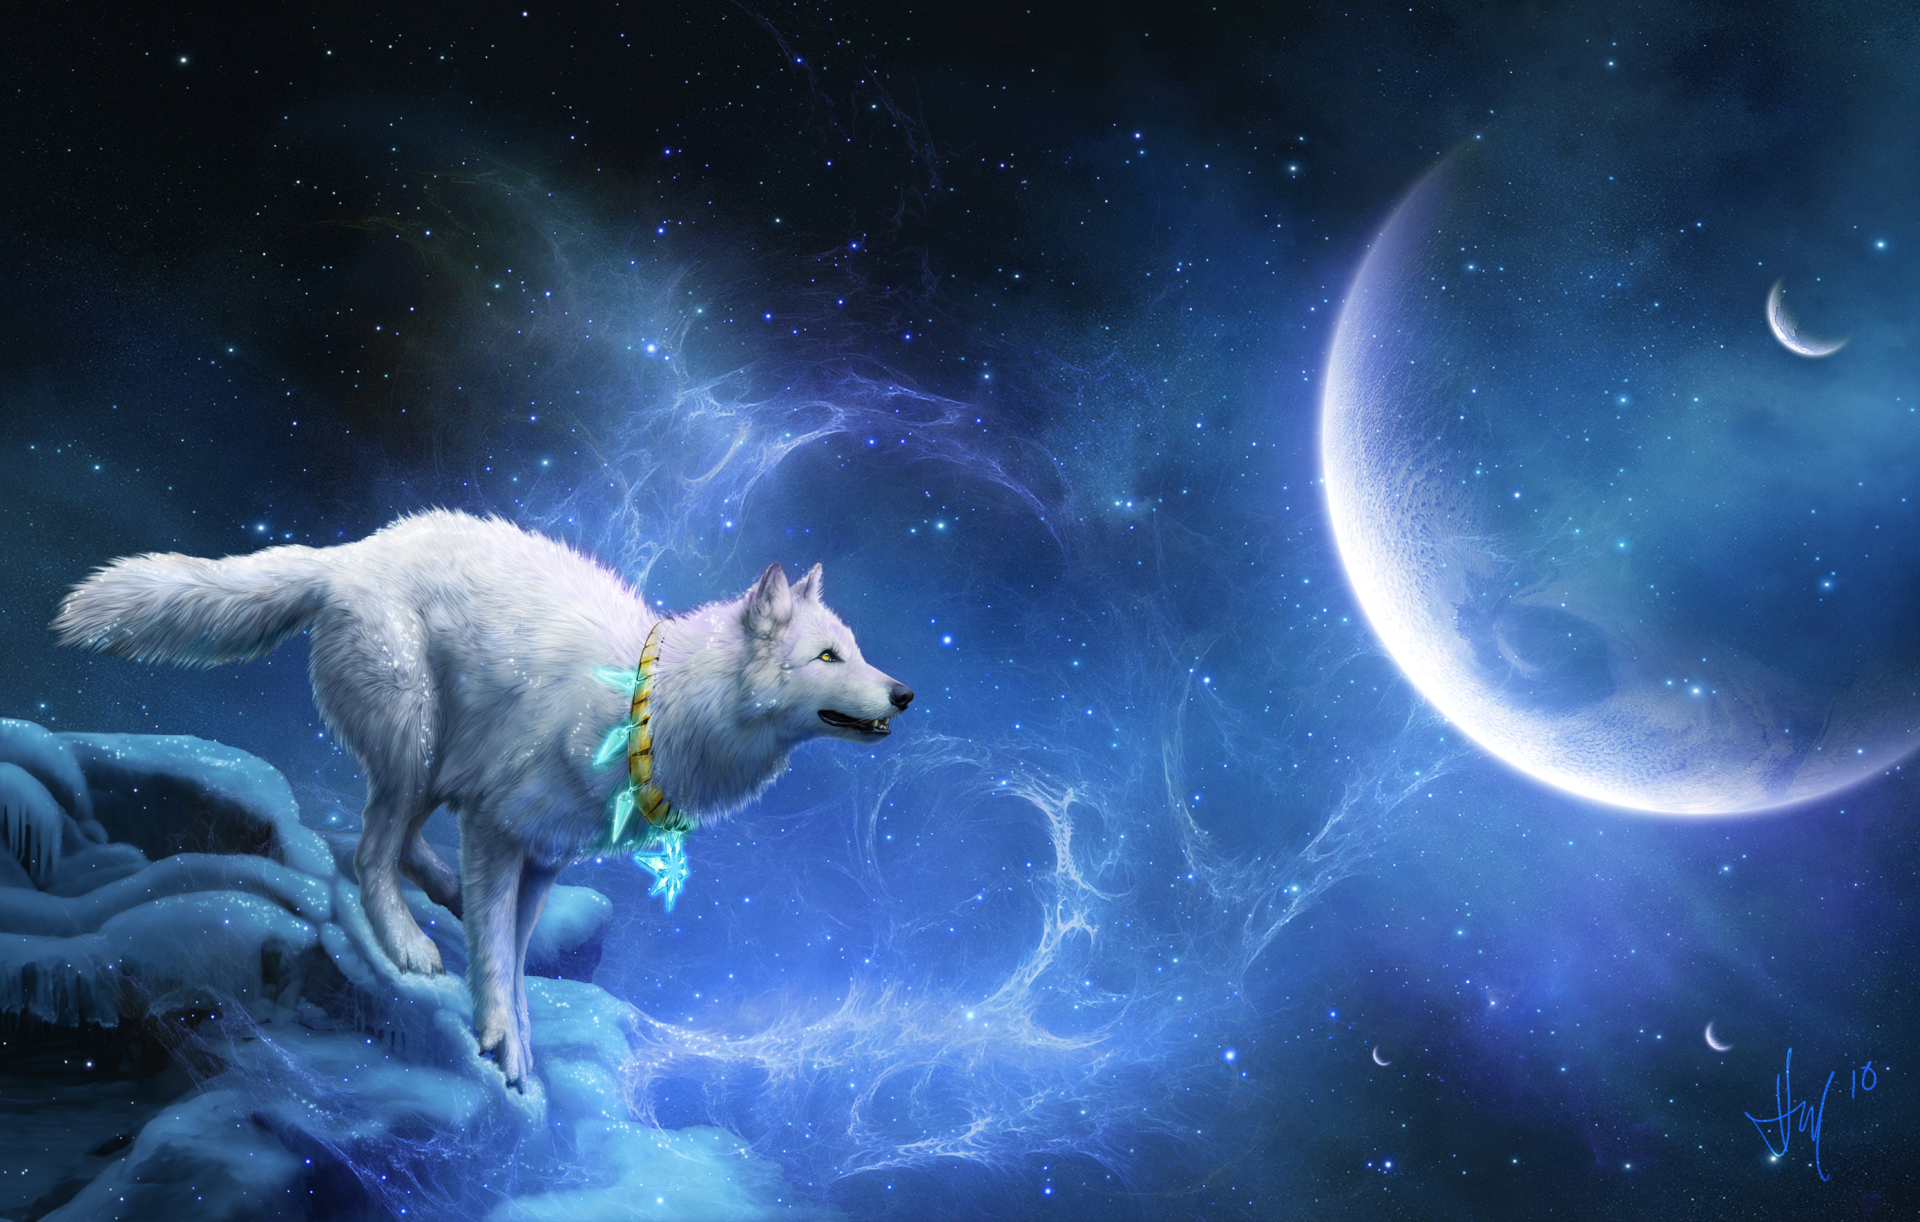 Fantasy - Wolf  Fantasy Animal Sky Stars Moon Planet Dreamcatcher Wallpaper